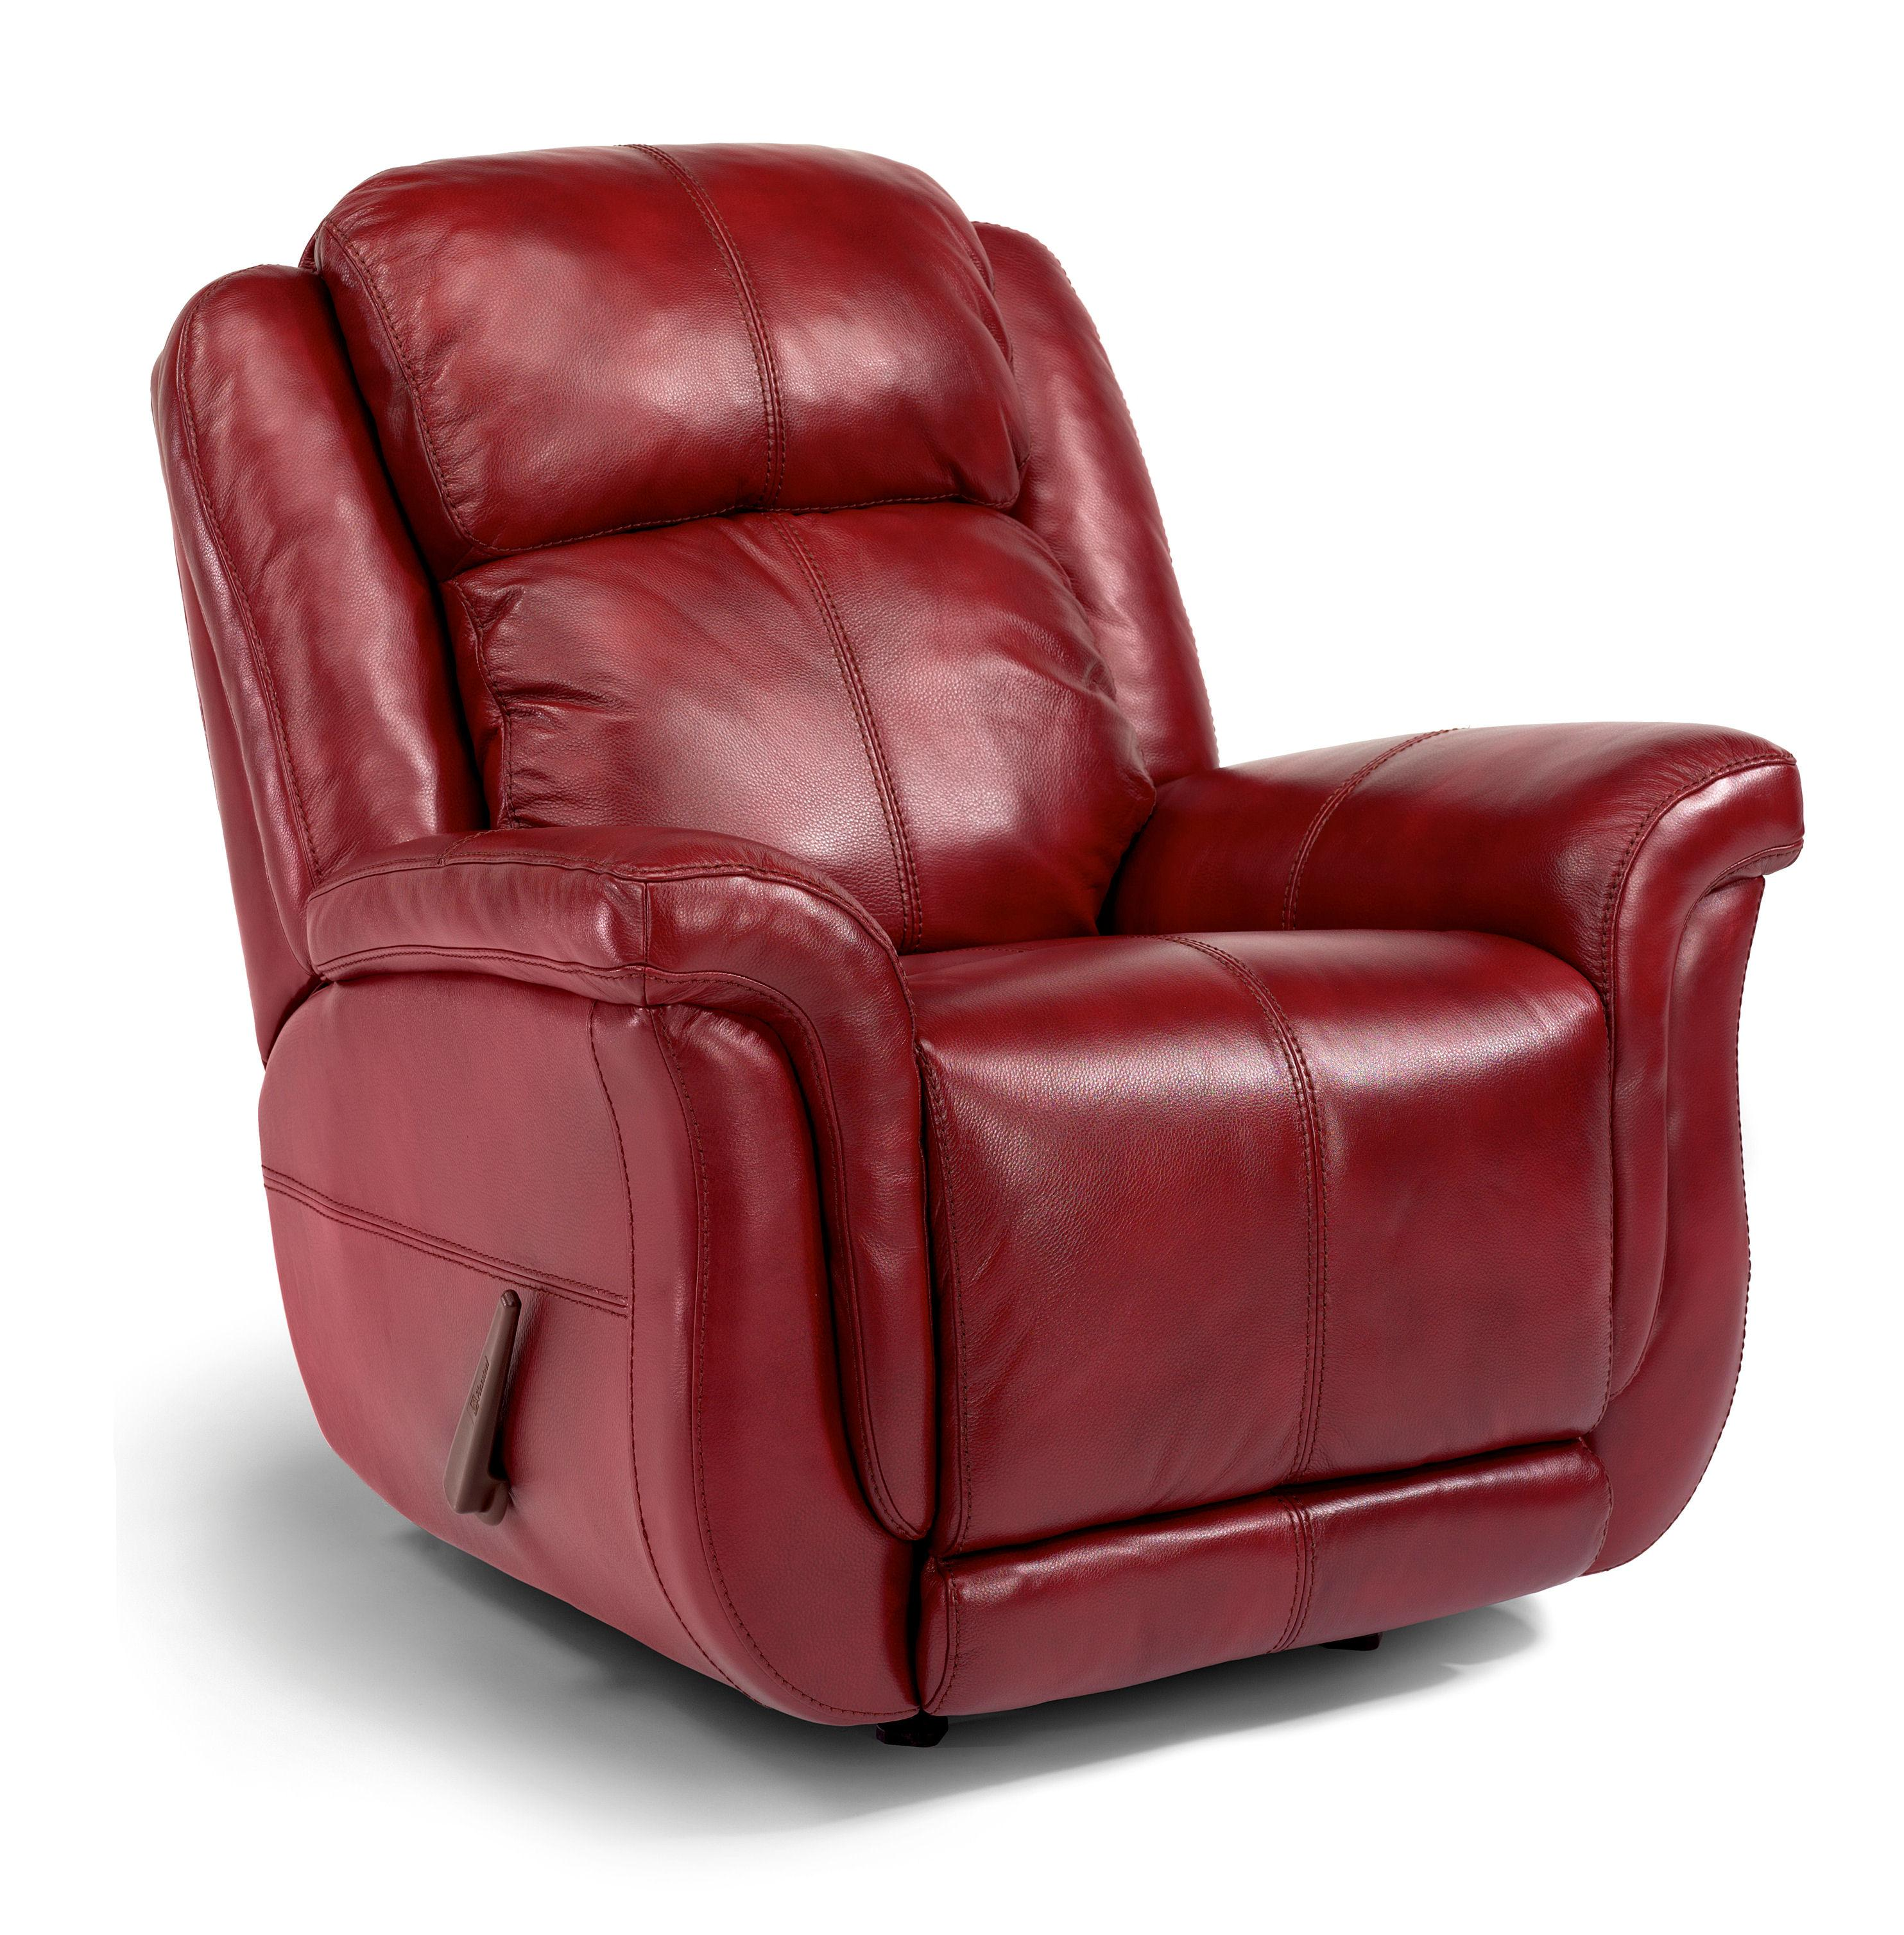 flexsteel chair prices wood desk chairs without wheels latitudes brookings casual rocker recliner